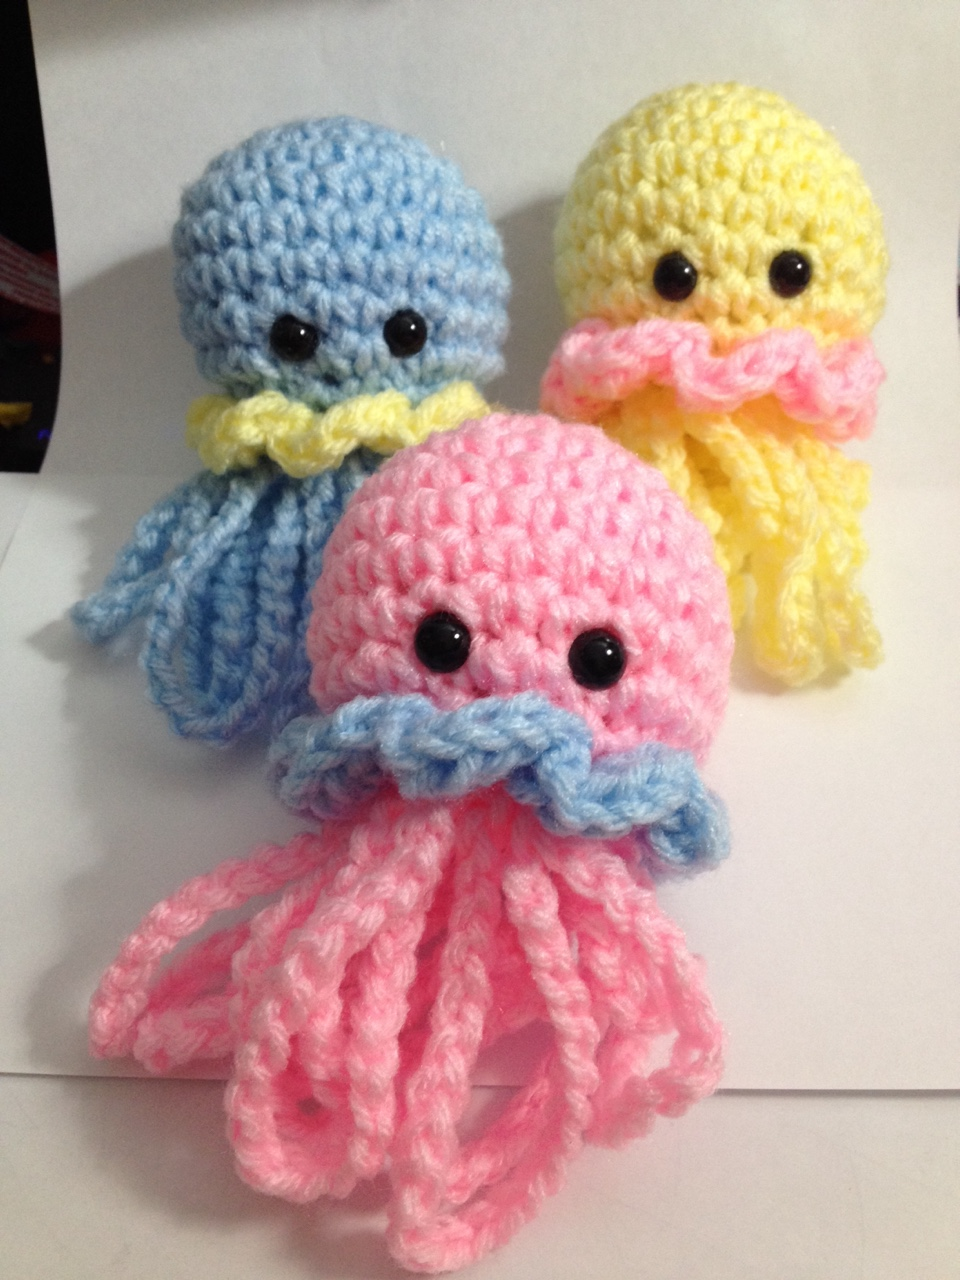 Crochet amigurumi jellyfish by stitchedlovecrochet on deviantart crochet amigurumi jellyfish by stitchedlovecrochet crochet amigurumi jellyfish by stitchedlovecrochet bankloansurffo Choice Image